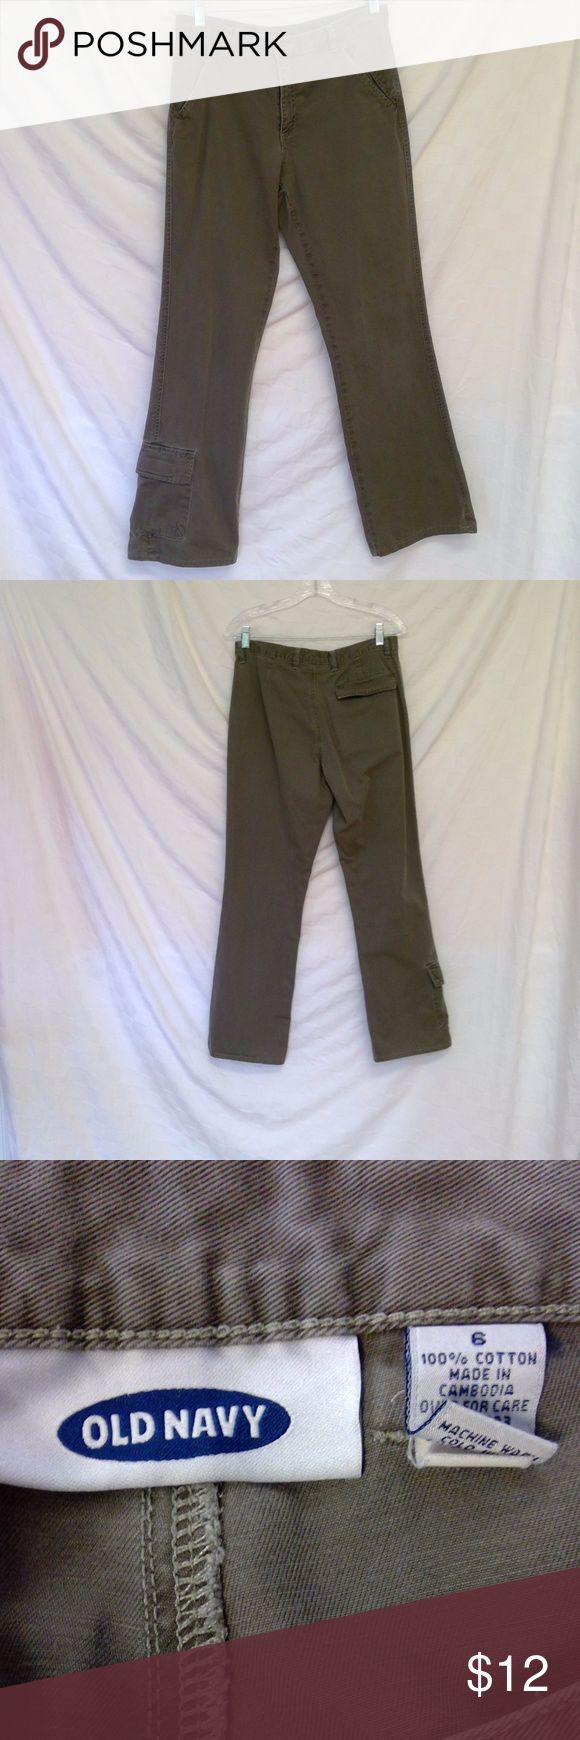 Old Navy Cargo pants Green/taupe cargo with pocket on bottom of right leg.  Waist 32in, Inseam 29 in. Size 6 Old Navy Pants Boot Cut & Flare